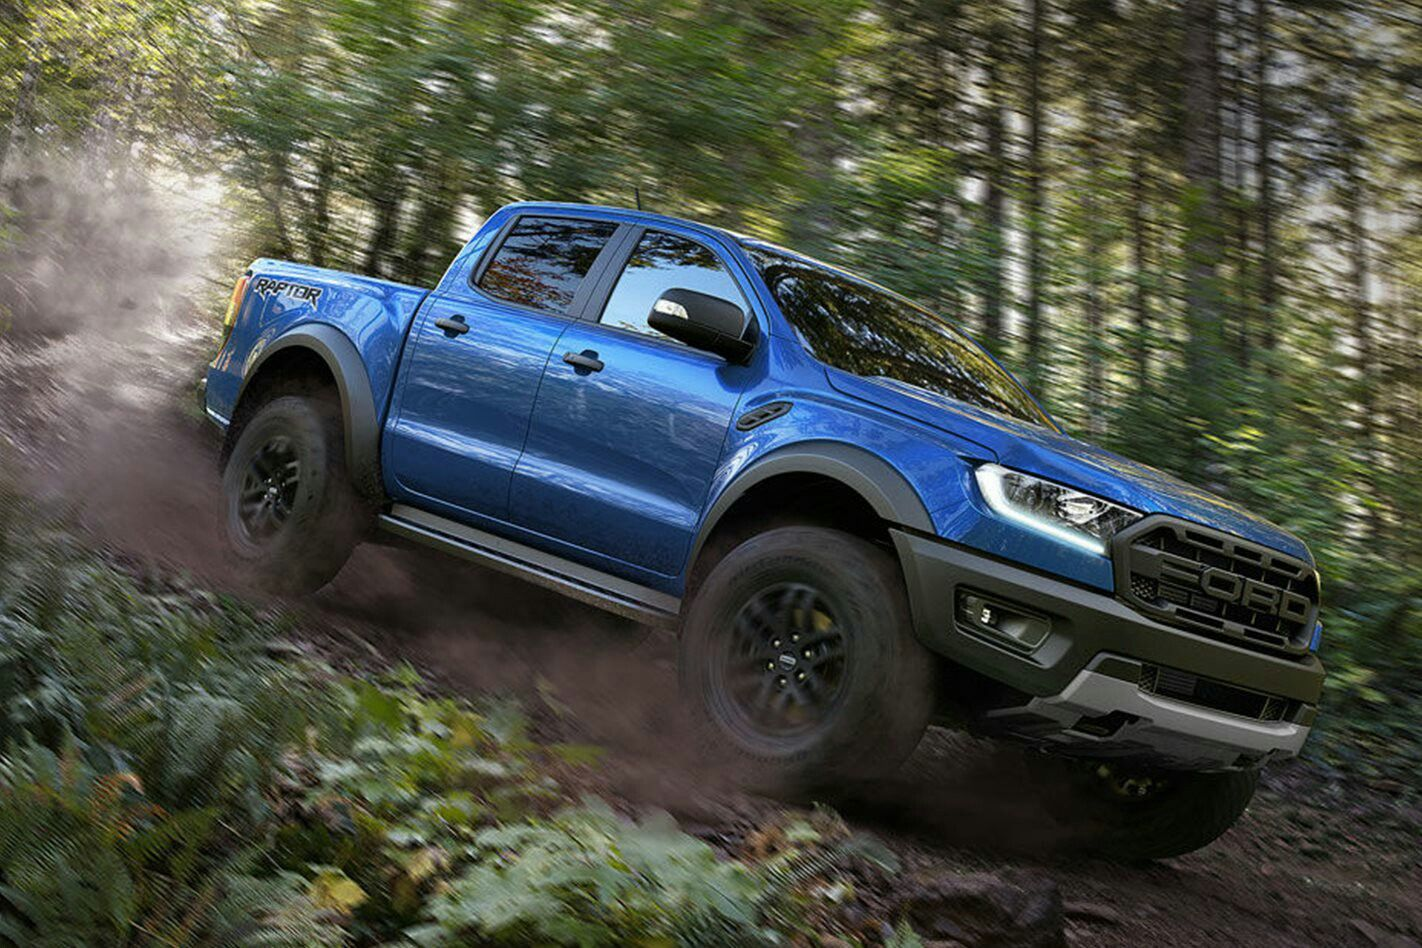 I Like The New Ford Ranger Ford Ranger Raptor Ford Ranger